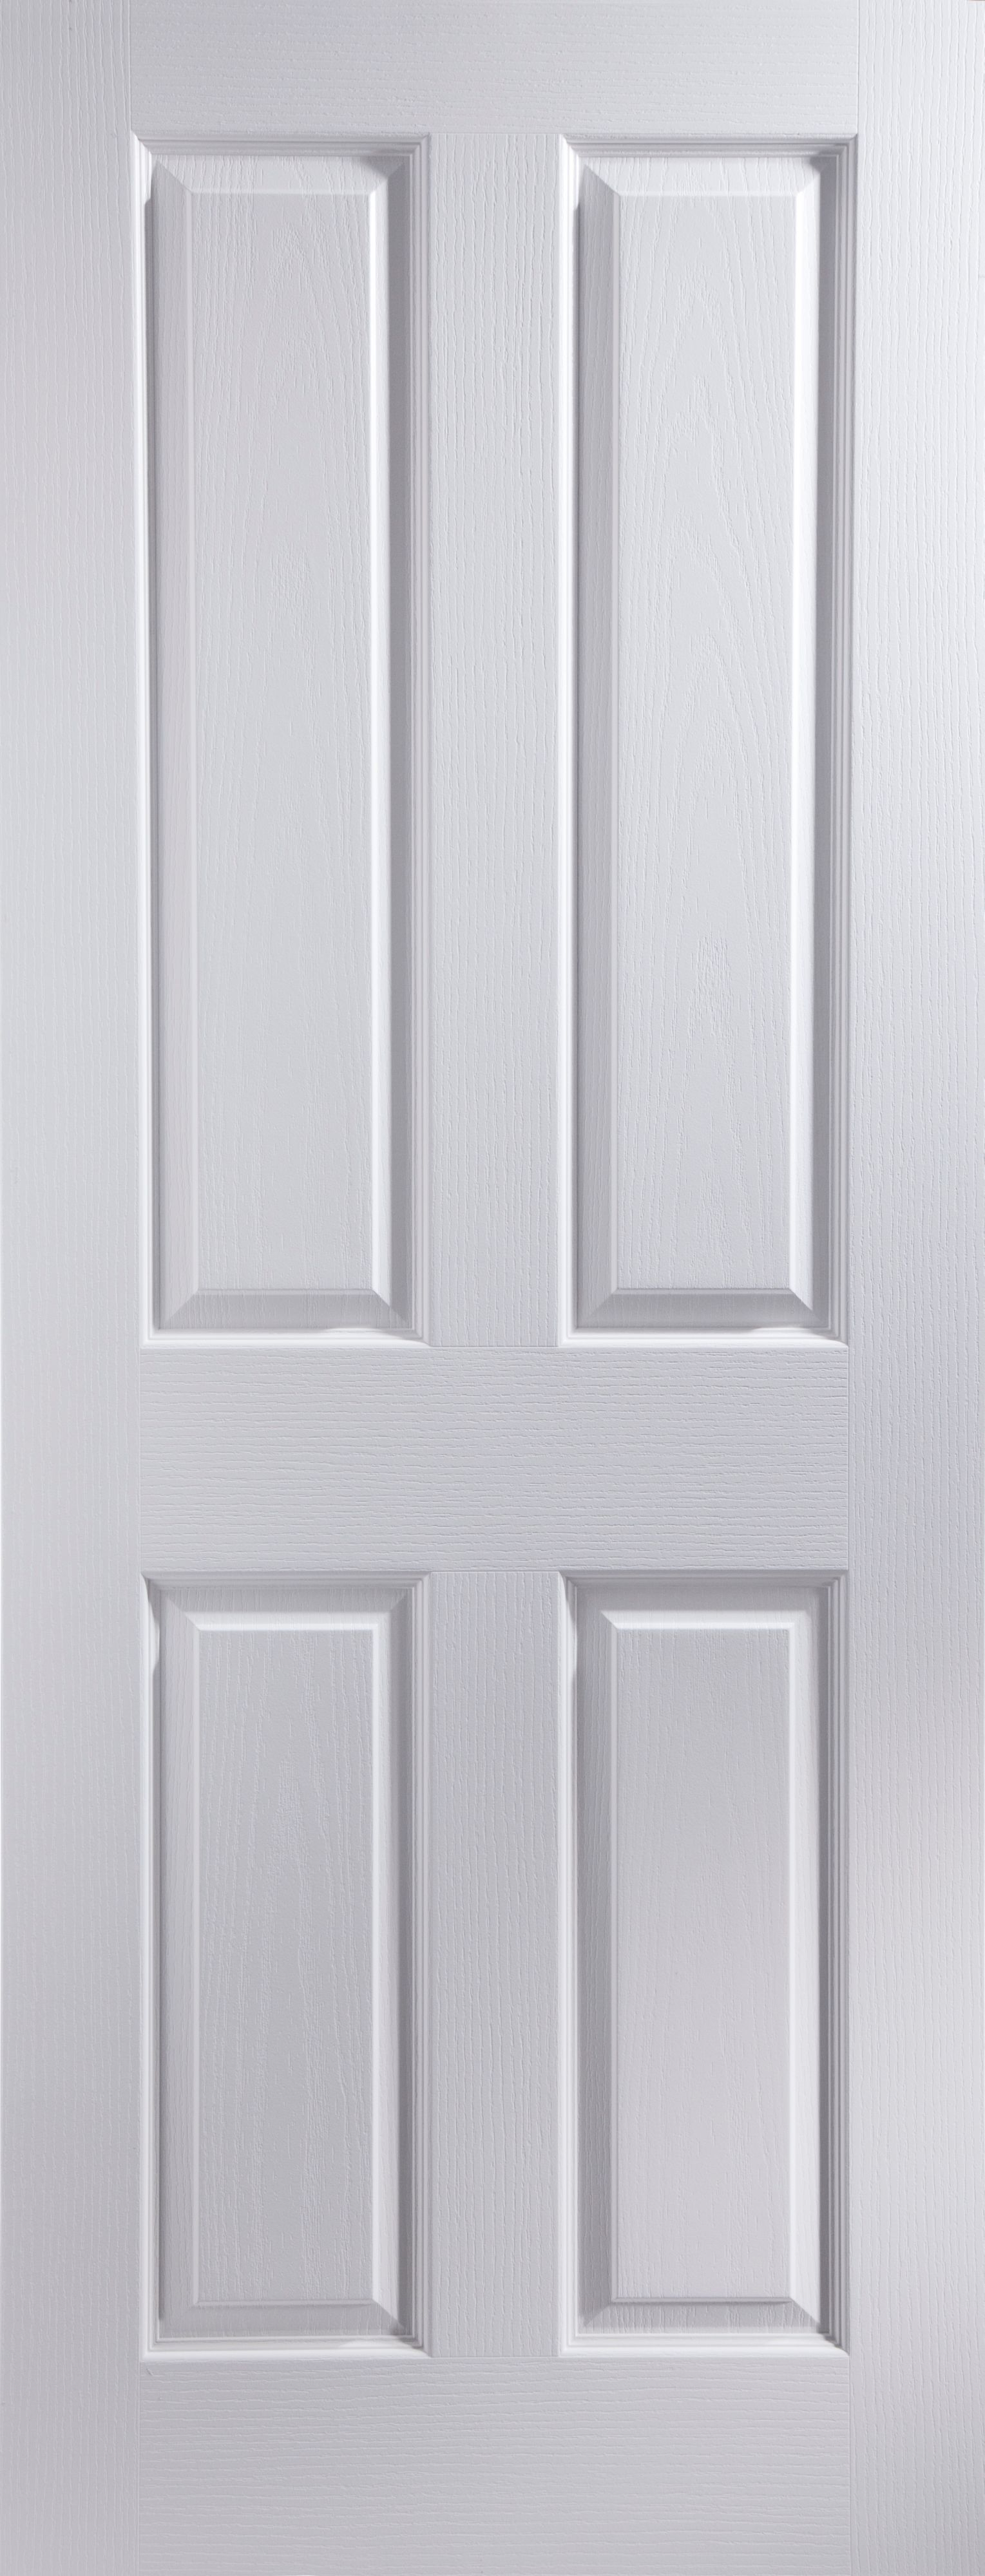 4 panel pre painted white woodgrain unglazed internal standard door 4 panel pre painted white woodgrain unglazed internal standard door h1981mm w762mm departments diy at bq planetlyrics Image collections